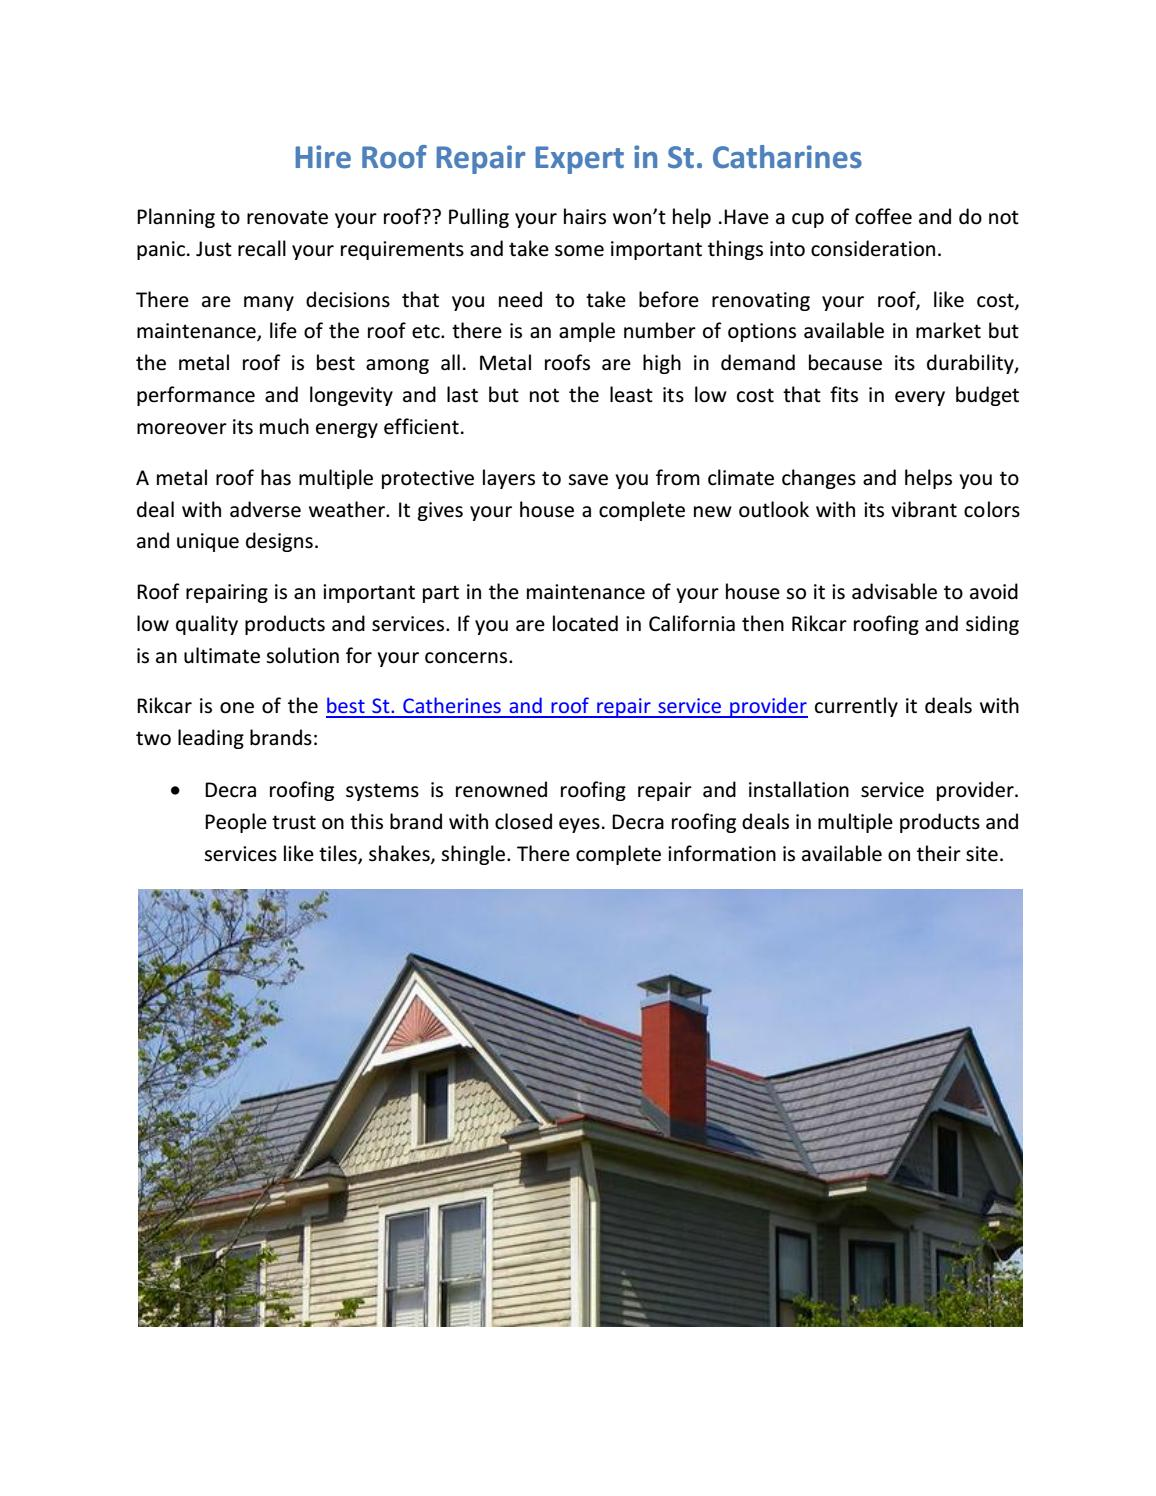 Hire Roof Repair Expert In St Catharines By Rikcar Issuu